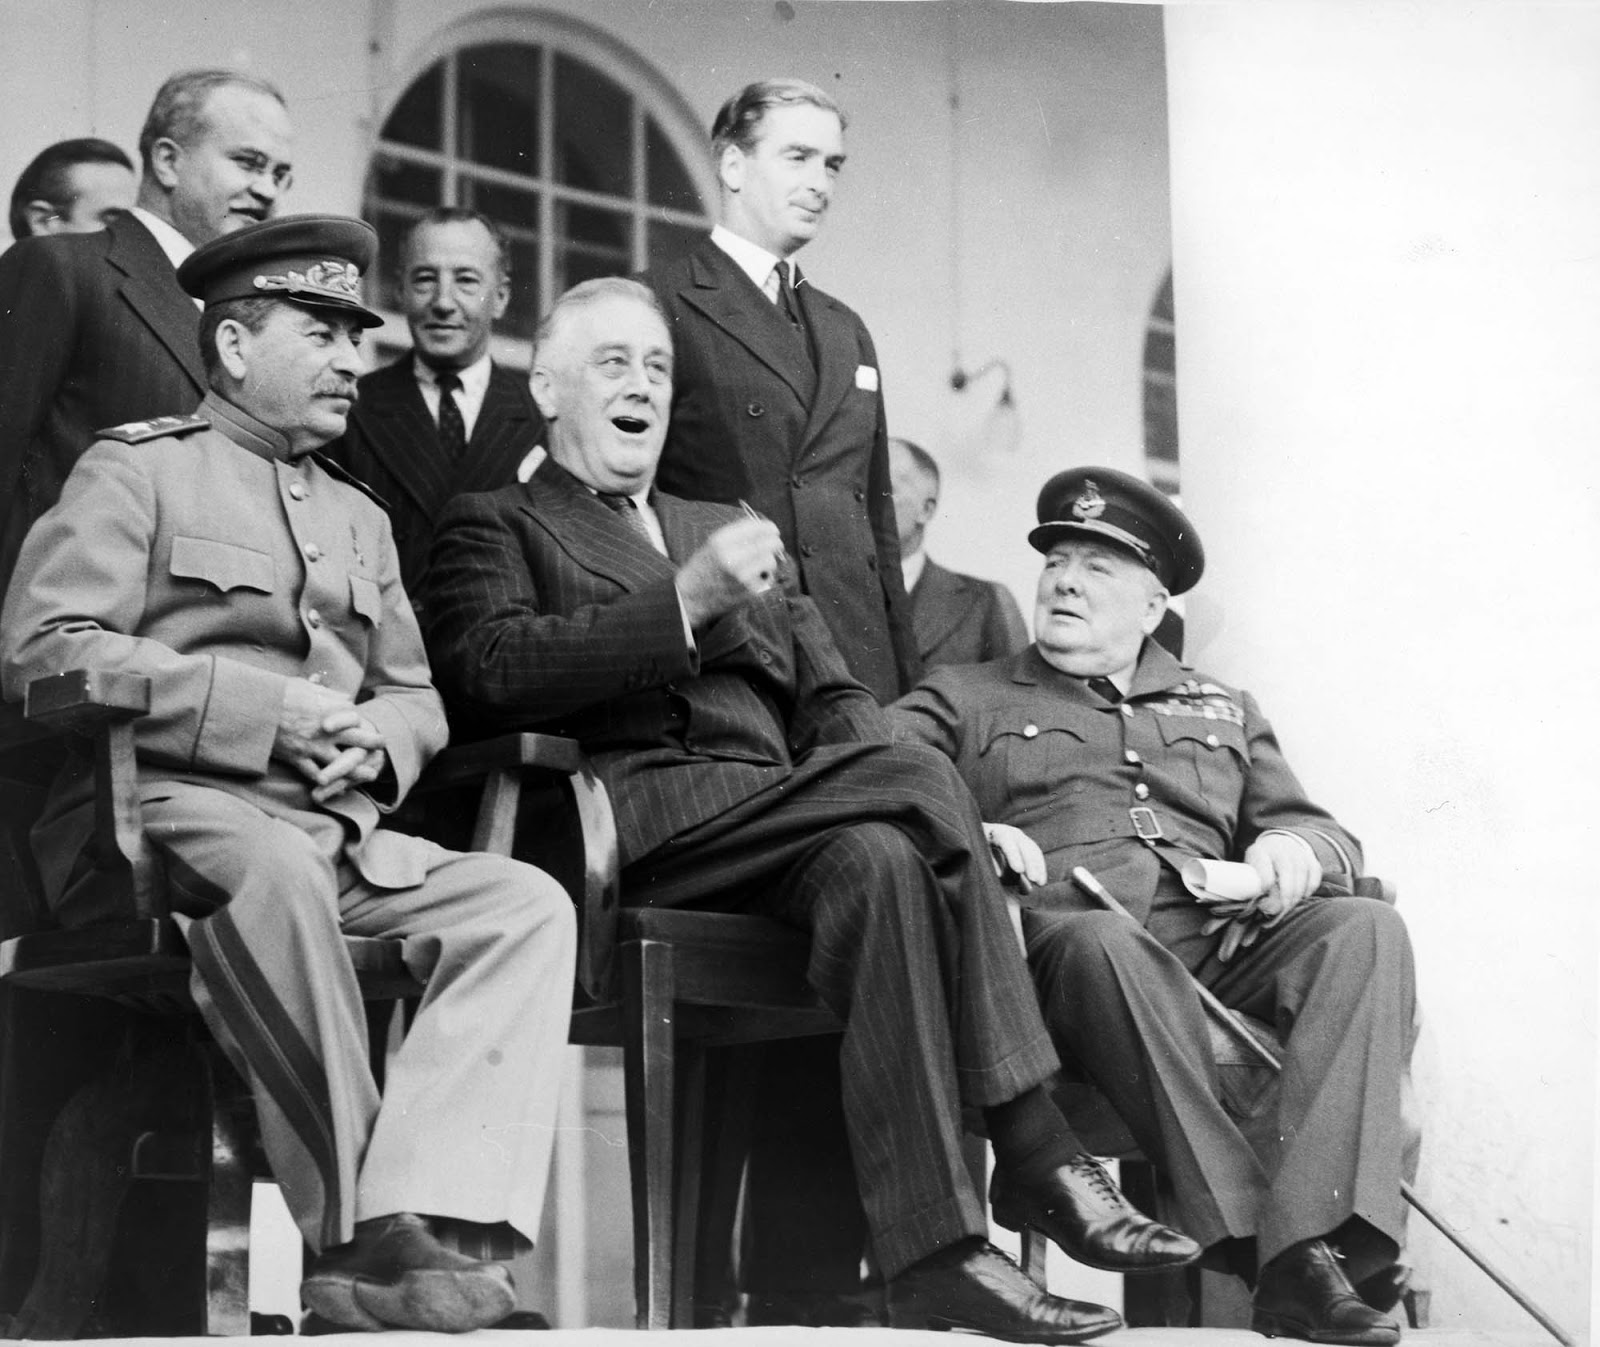 The chairs are different for each of them. Churchill looks more comfortable  on his chair.